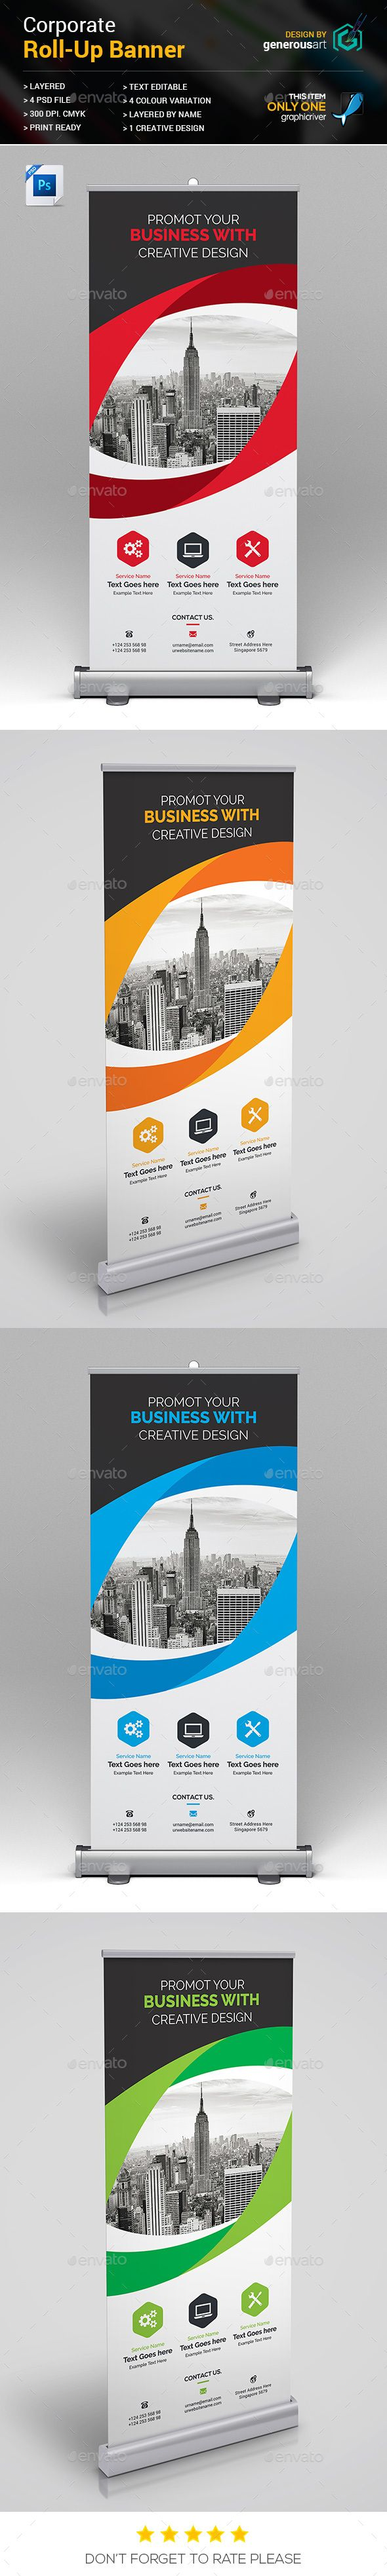 RollUp Banner — Photoshop PSD #creative #black • Available here → https://graphicriver.net/item/rollup-banner/18708680?ref=pxcr